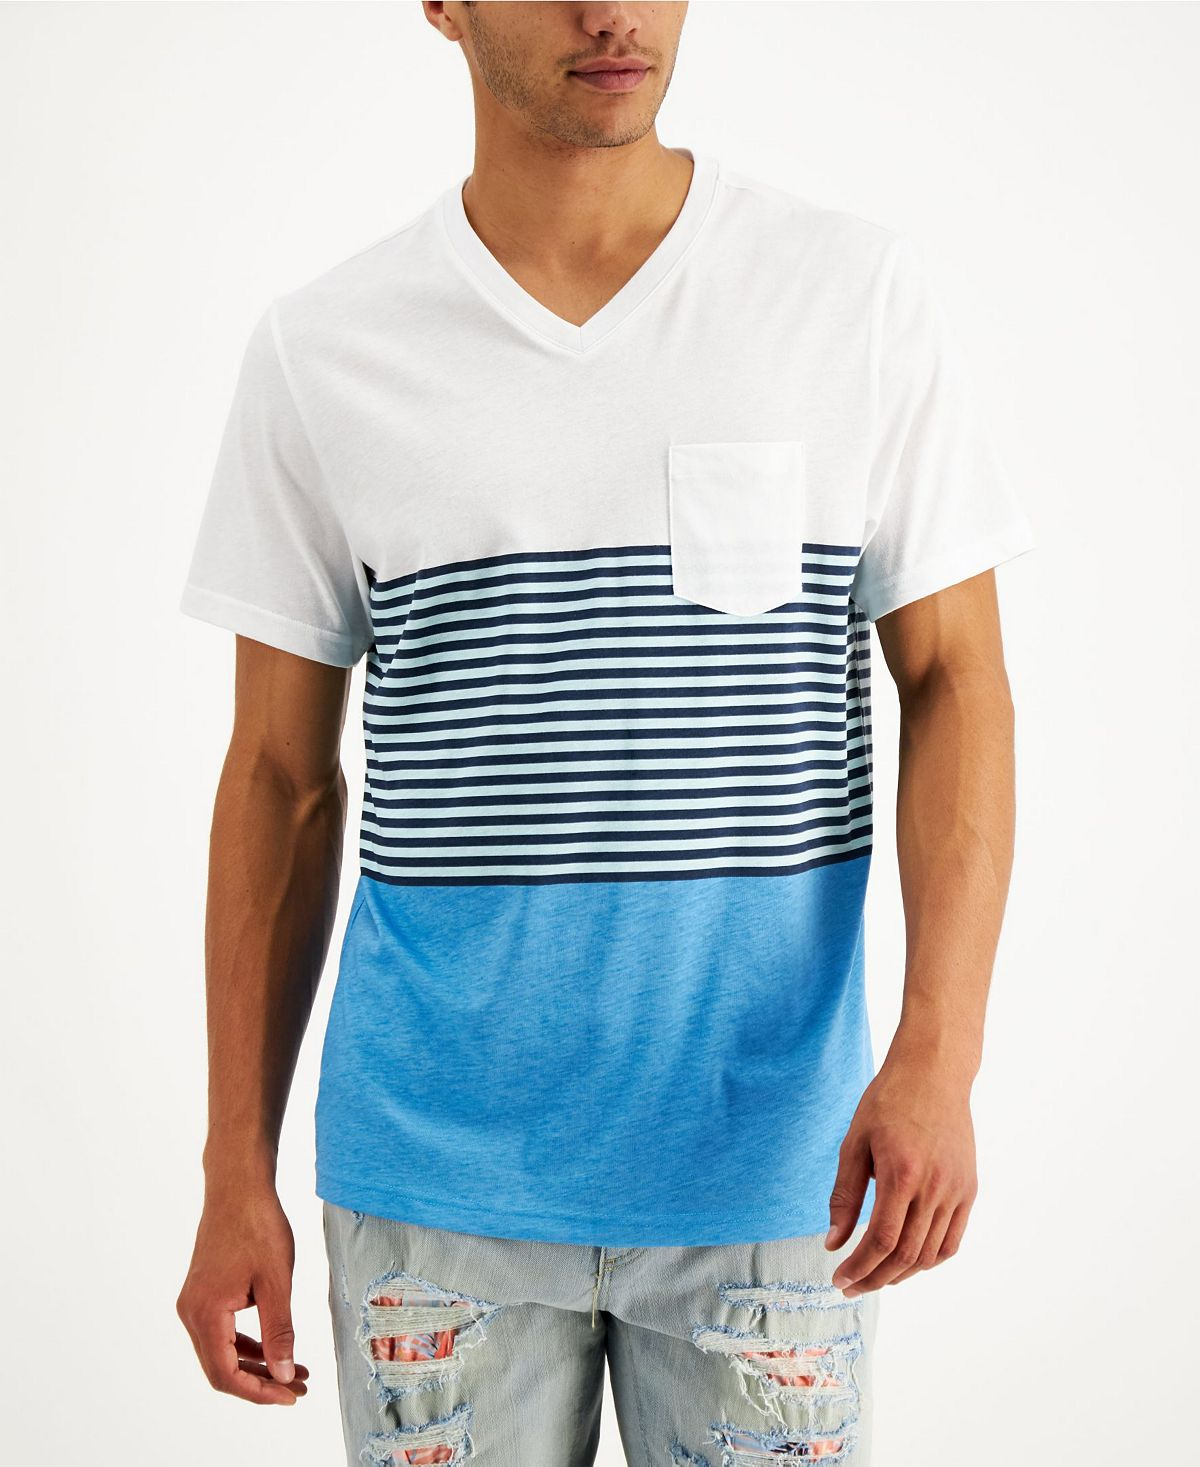 Sun + Stone Sun + Stone Lido Striped Colorblocked T-shirt Seacrest Aqua